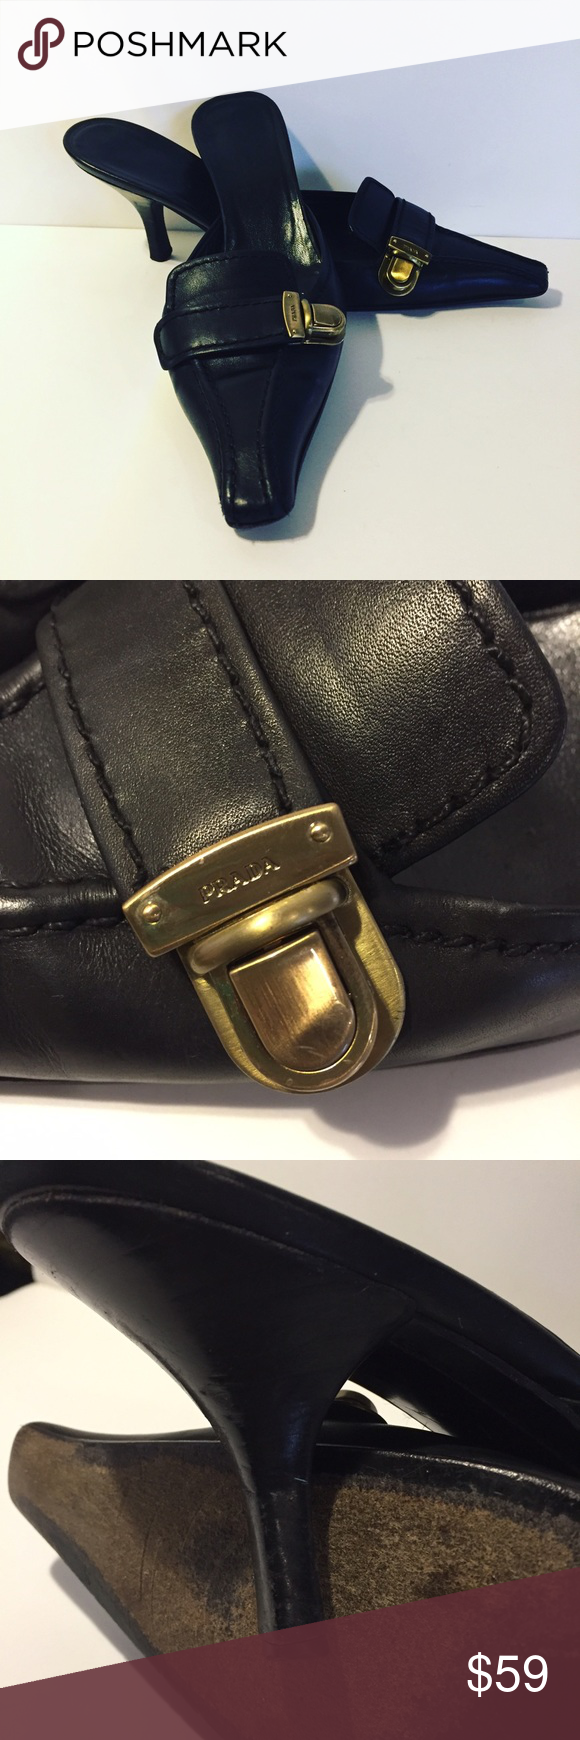 Prada Mule Clogs Kitten Heel Women's Prada black leather buckle slip on mules size 36 1/2. Made in Italy. These preowned Prada mules are in good condition showing signs of wear on heels and sole but overall fine wearable shape. There is some residue from a sole insert. Prada Shoes Mules & Clogs